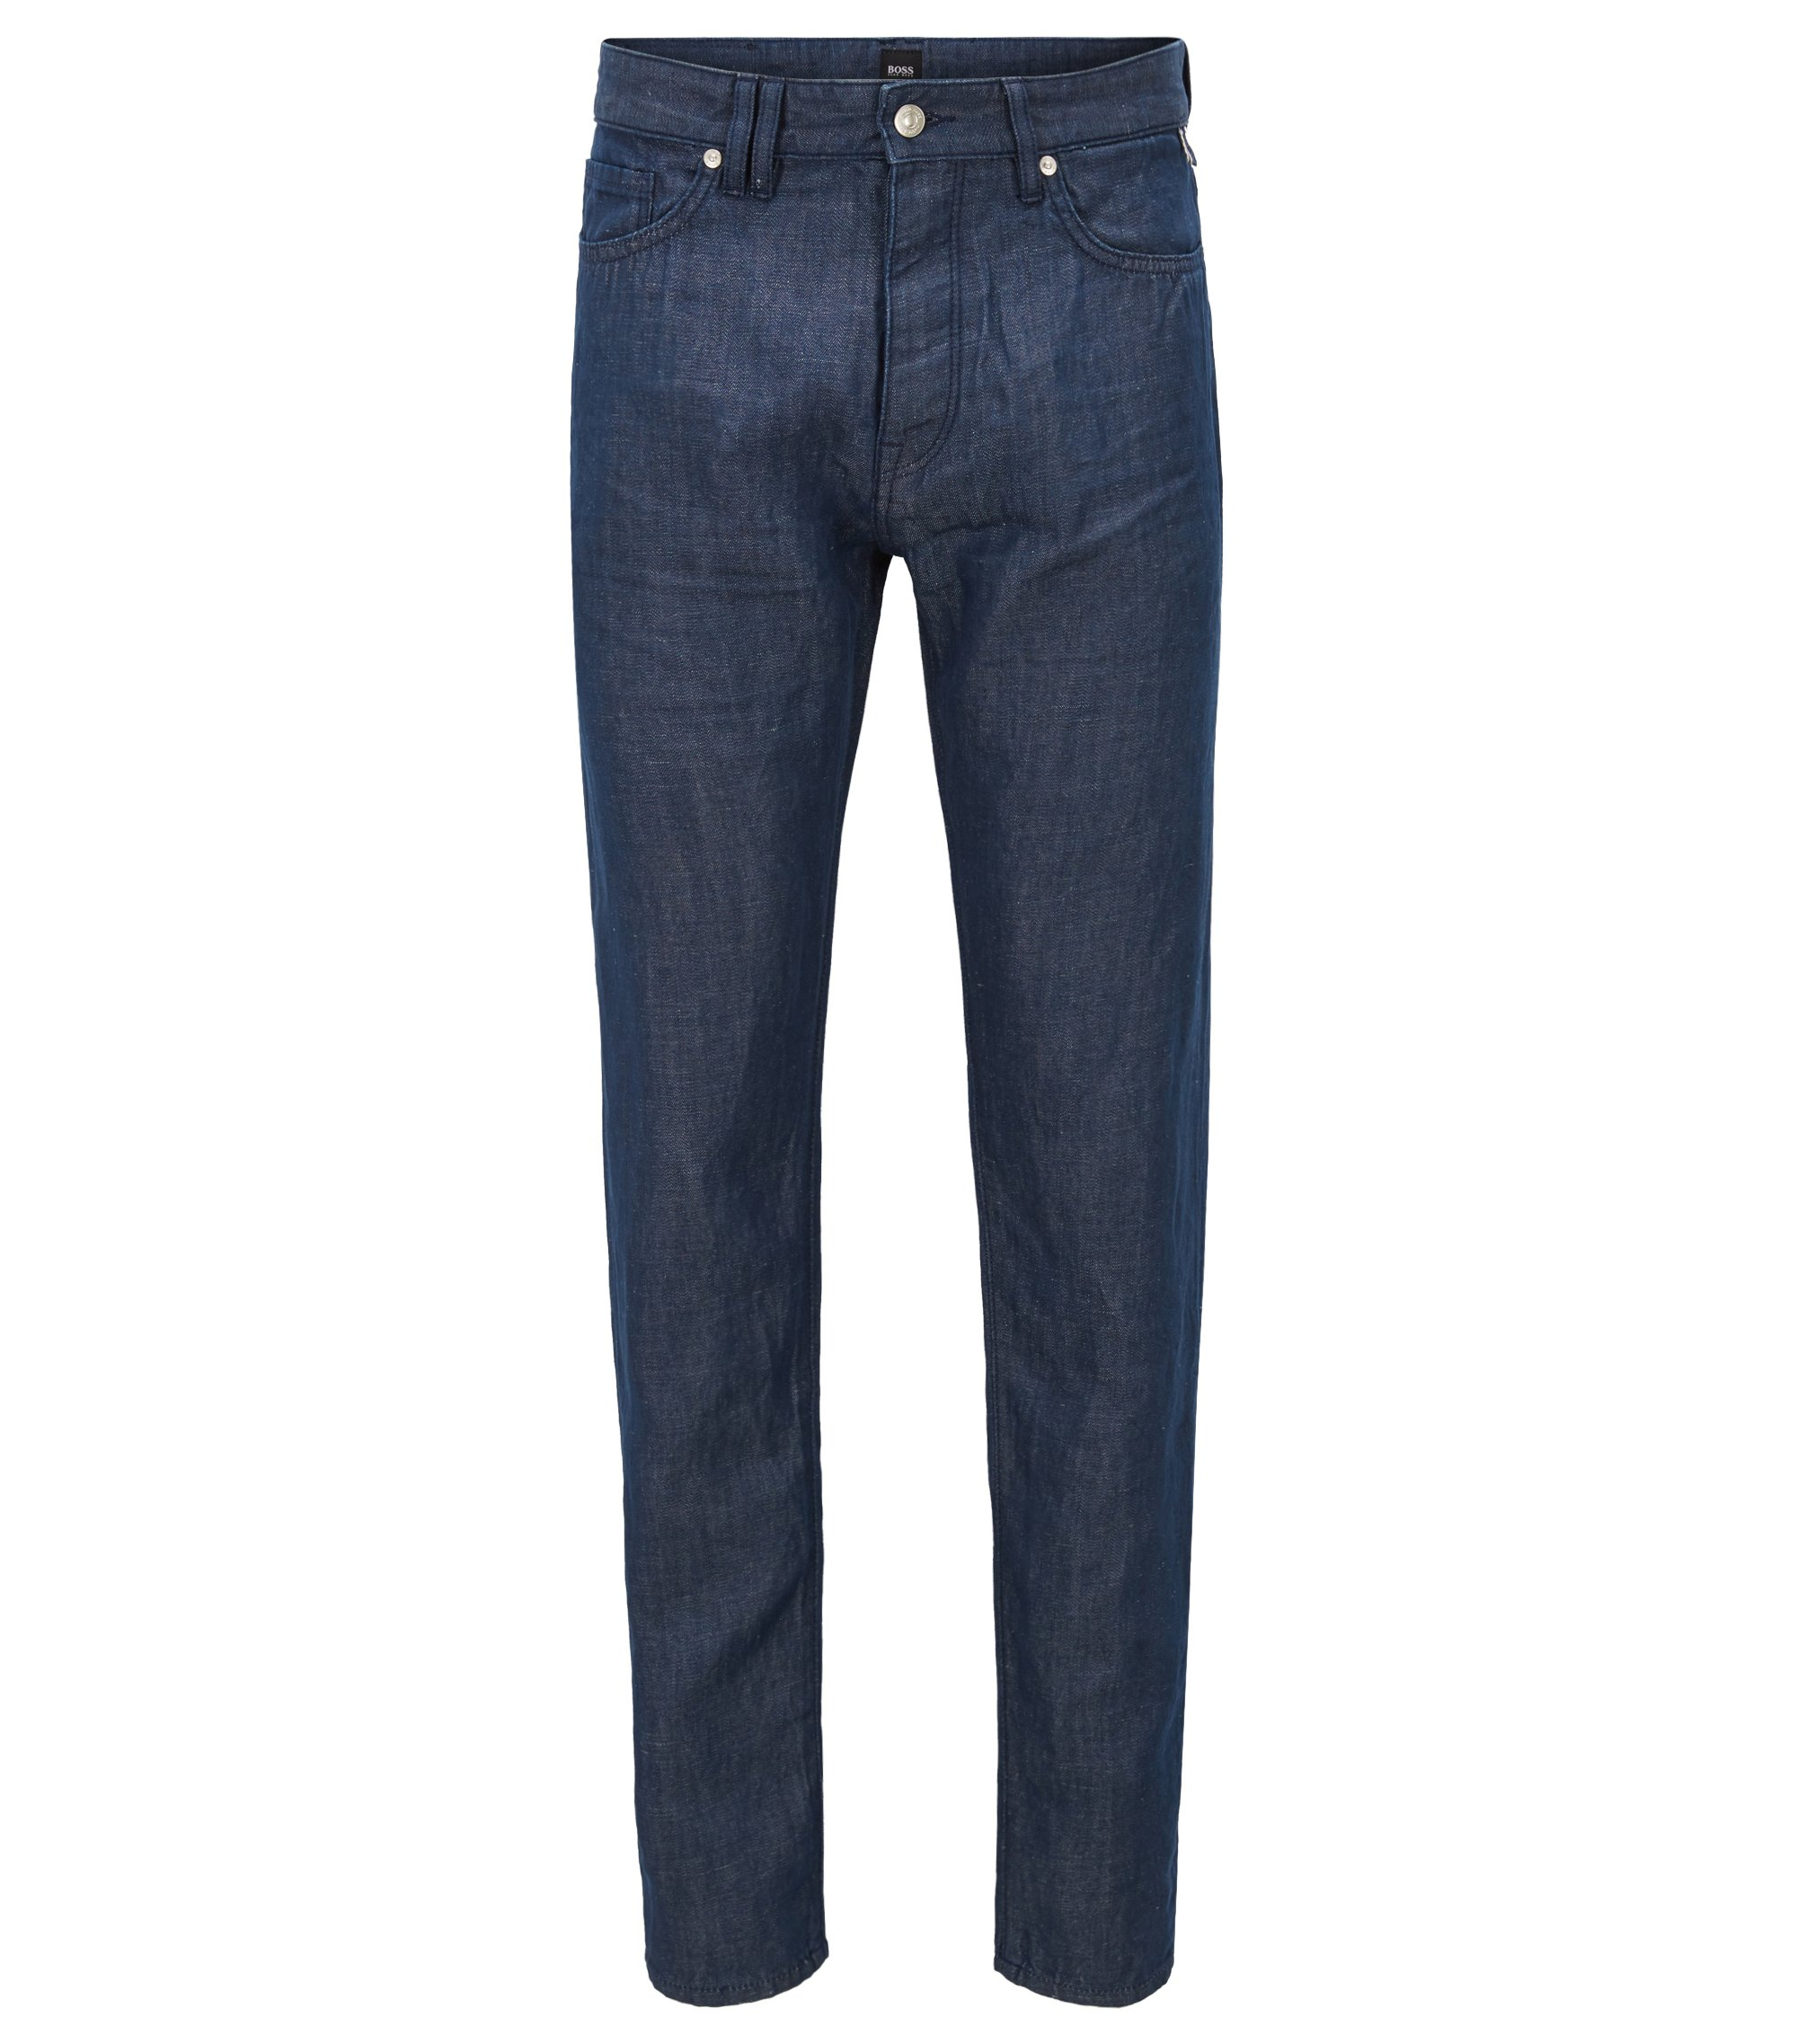 Relaxed-Fit Jeans aus Selvedge-Denim in Cropped-Länge, Dunkelblau